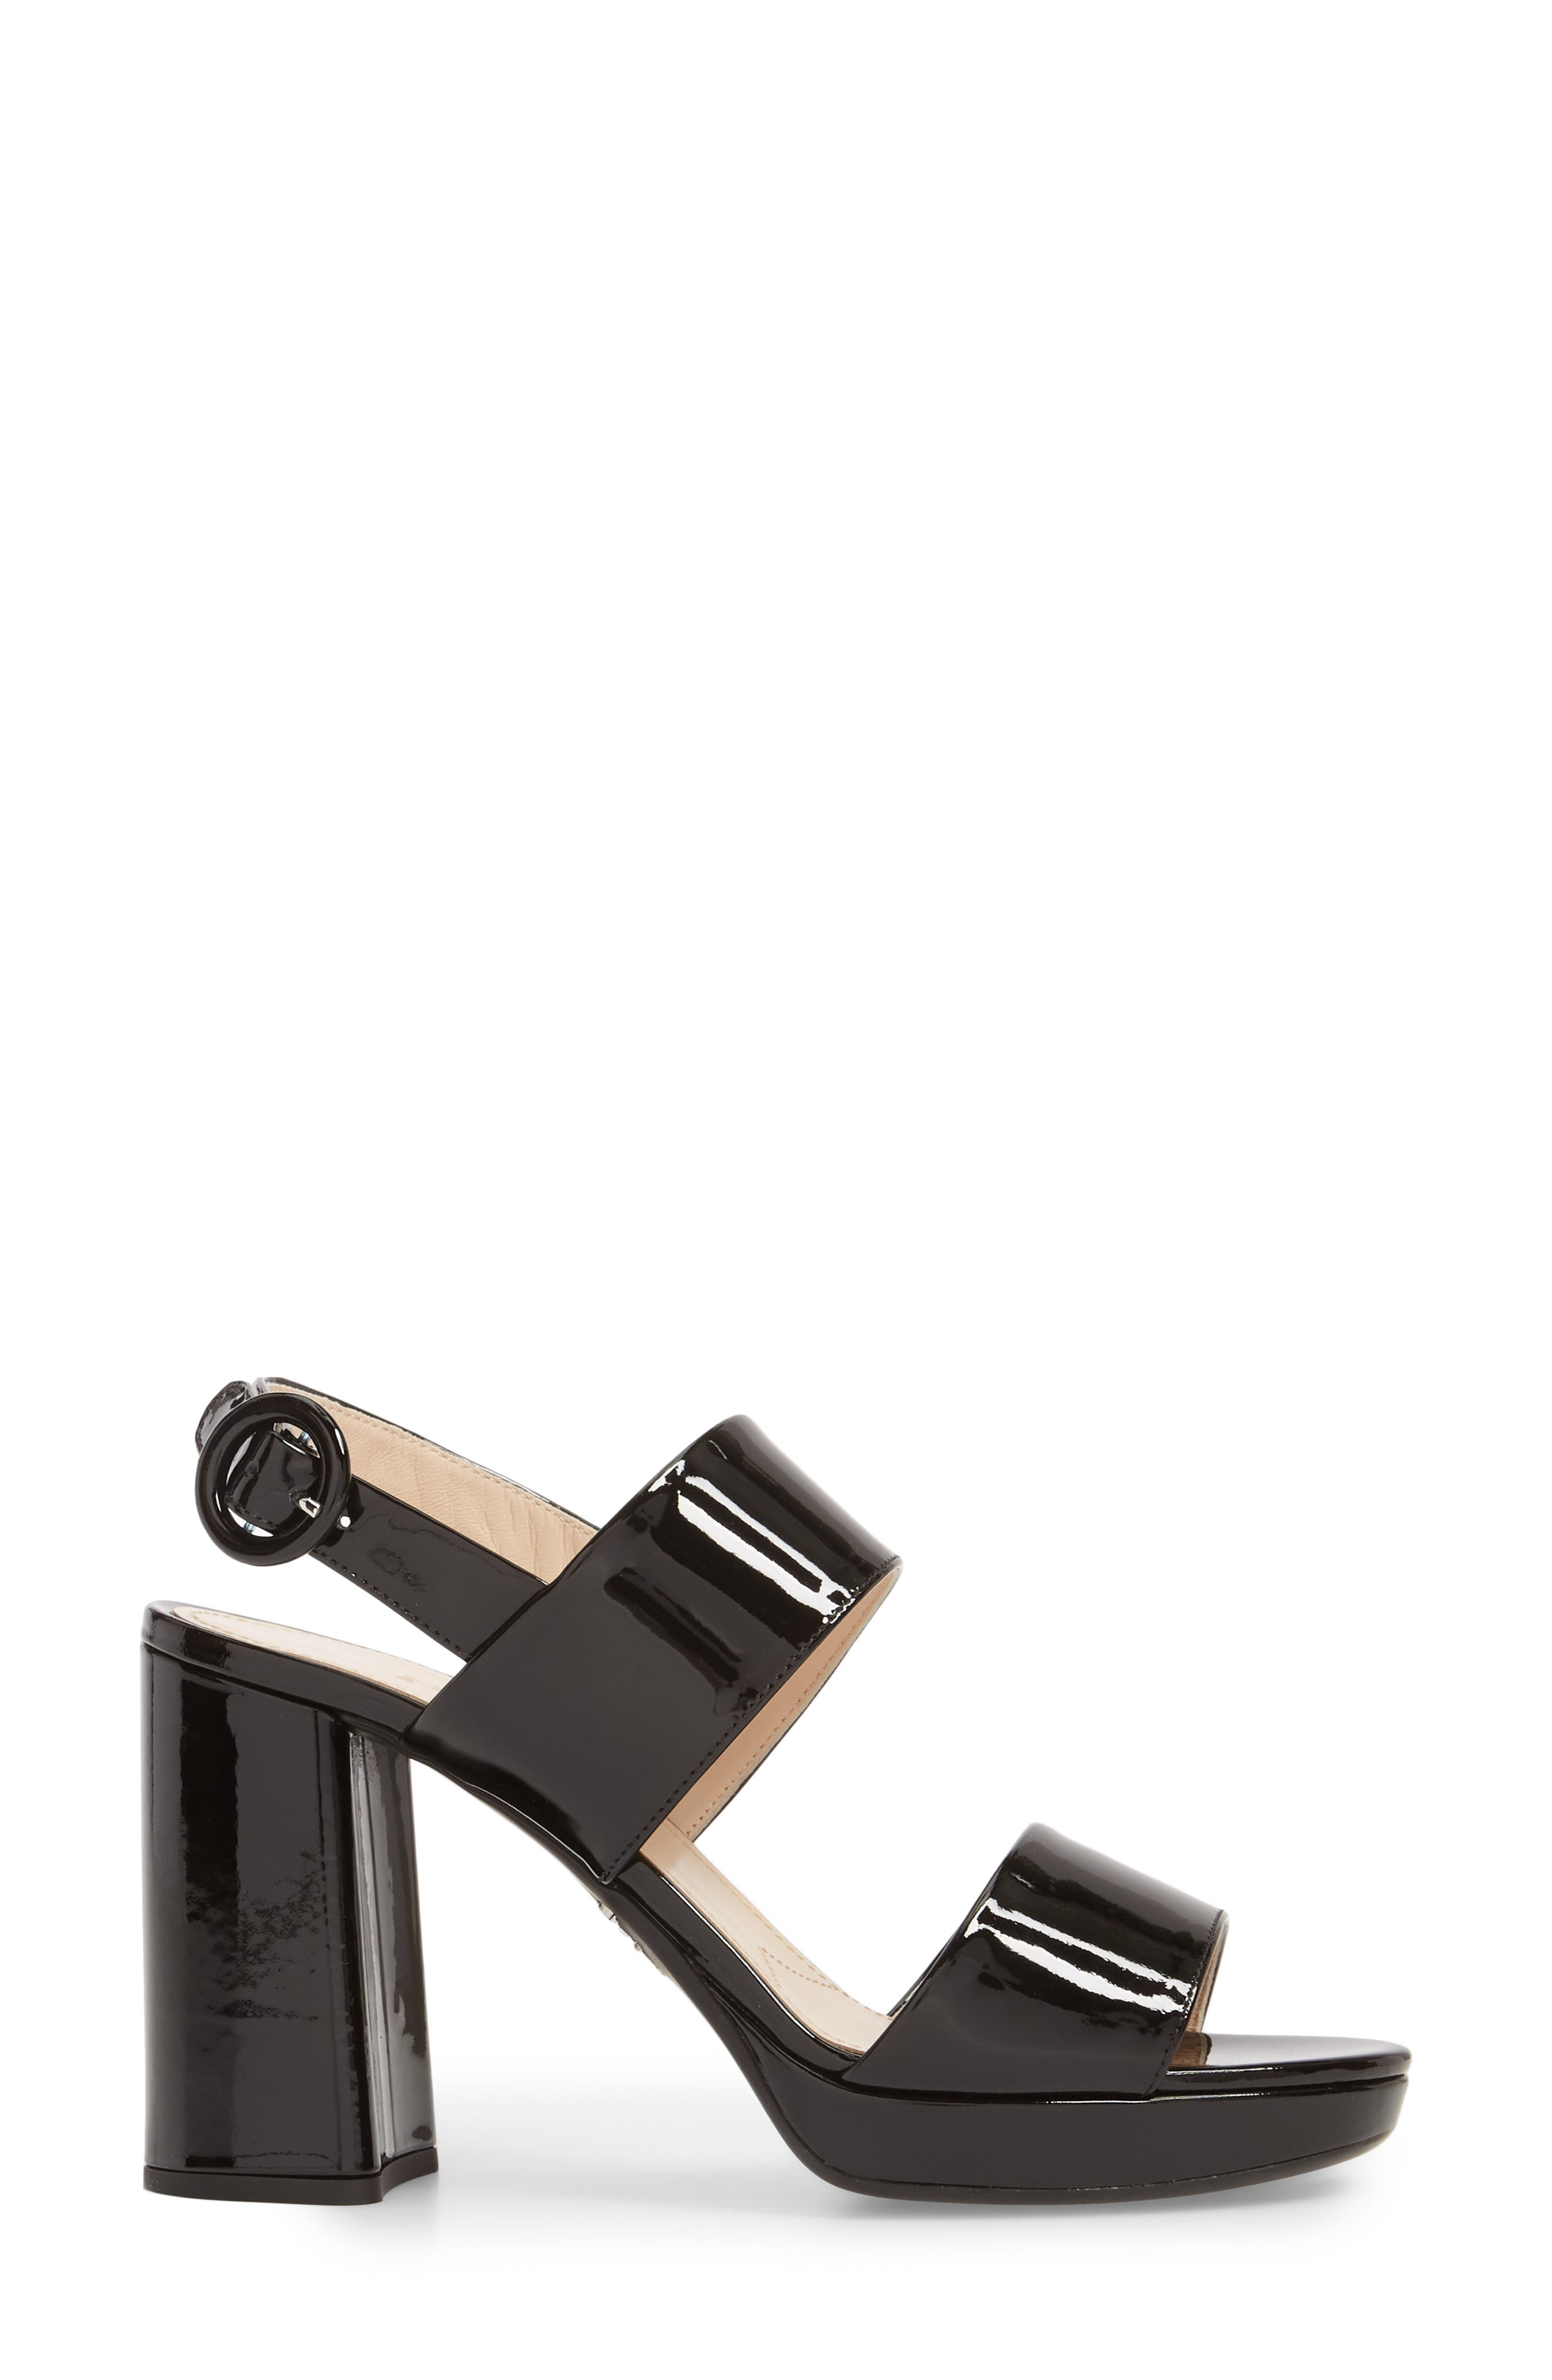 PRADA, Slingback Platform Sandal, Alternate thumbnail 3, color, BLACK PATENT